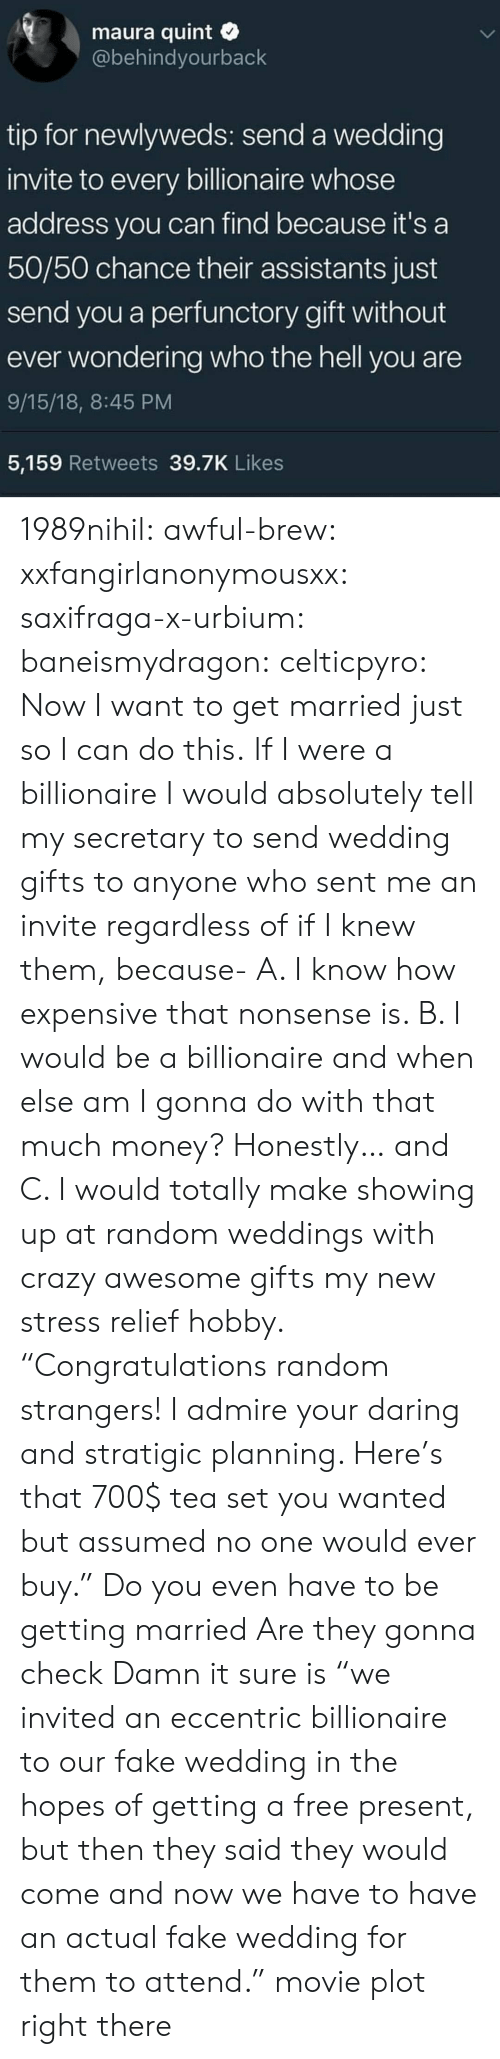 "Crazy, Fake, and Money: maura quint  @behindyourback  tip for newlyweds: send a wedding  invite to every billionaire whose  address you can find because it's a  50/50 chance their assistants just  send you a perfunctory gift without  ever wondering who the hell you are  9/15/18, 8:45 PM  5,159 Retweets 39.7K Likes 1989nihil:  awful-brew:  xxfangirlanonymousxx:  saxifraga-x-urbium:  baneismydragon:  celticpyro: Now I want to get married just so I can do this.  If I were a billionaire I would absolutely tell my secretary to send wedding gifts to anyone who sent me an invite regardless of if I knew them, because- A. I know how expensive that nonsense is. B. I would be a billionaire and when else am I gonna do with that much money? Honestly… and C. I would totally make showing up at random weddings with crazy awesome gifts my new stress relief hobby. ""Congratulations random strangers! I admire your daring and stratigic planning. Here's that 700$ tea set you wanted but assumed no one would ever buy.""   Do you even have to be getting married Are they gonna check   Damn it sure is  ""we invited an eccentric billionaire to our fake wedding in the hopes of getting a free present, but then they said they would come and now we have to have an actual fake wedding for them to attend.""  movie plot right there"